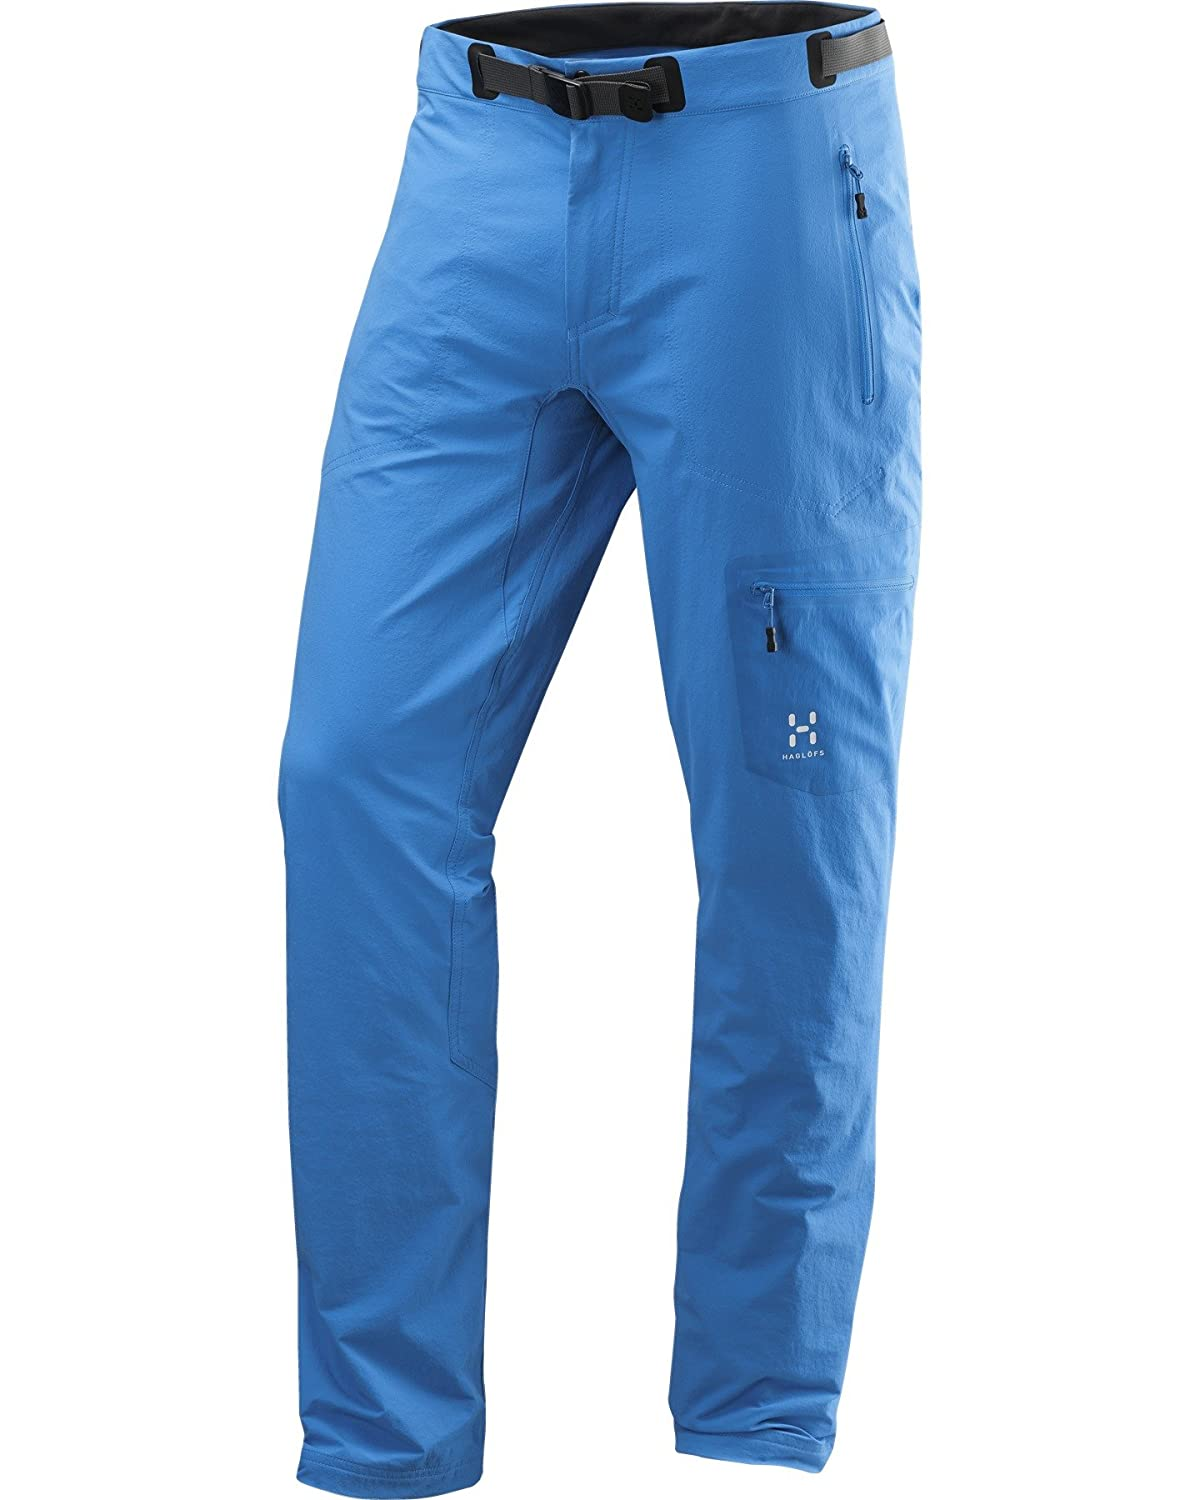 Haglöfs Herren Softshell Hose Lizard Pants Men S15